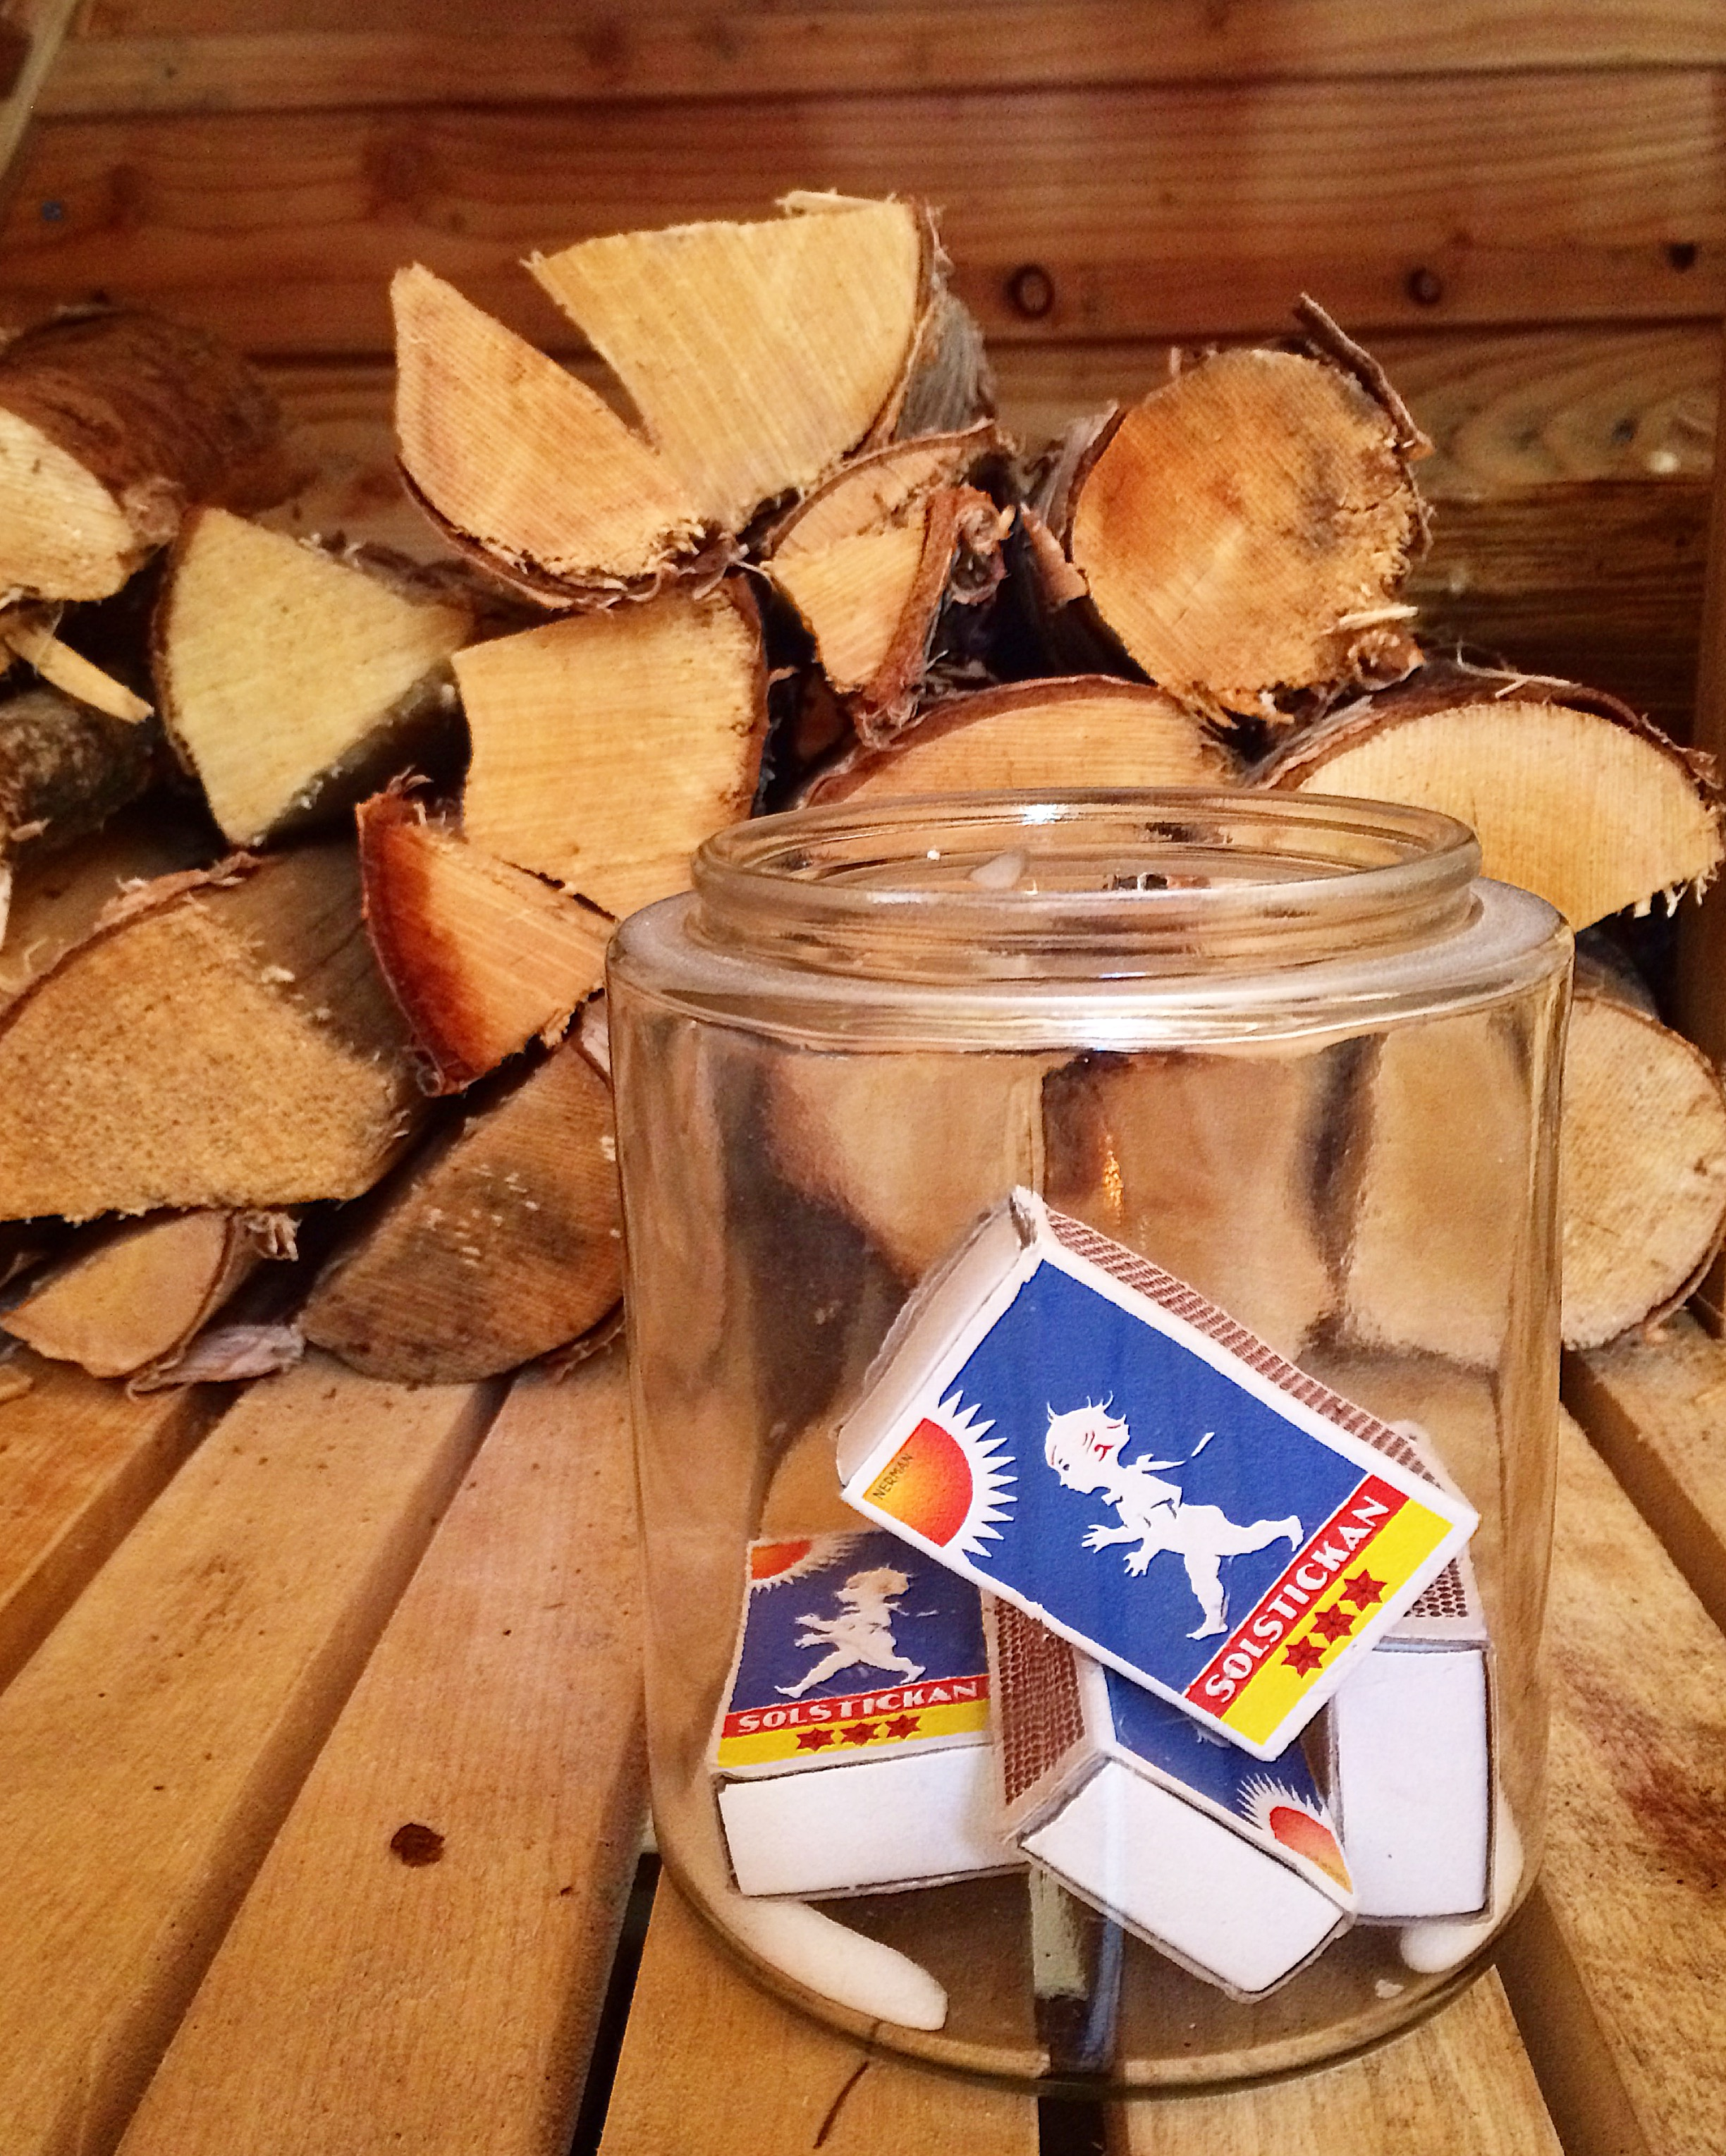 Swedish Solstickan matches in front of chopped wood in a sauna